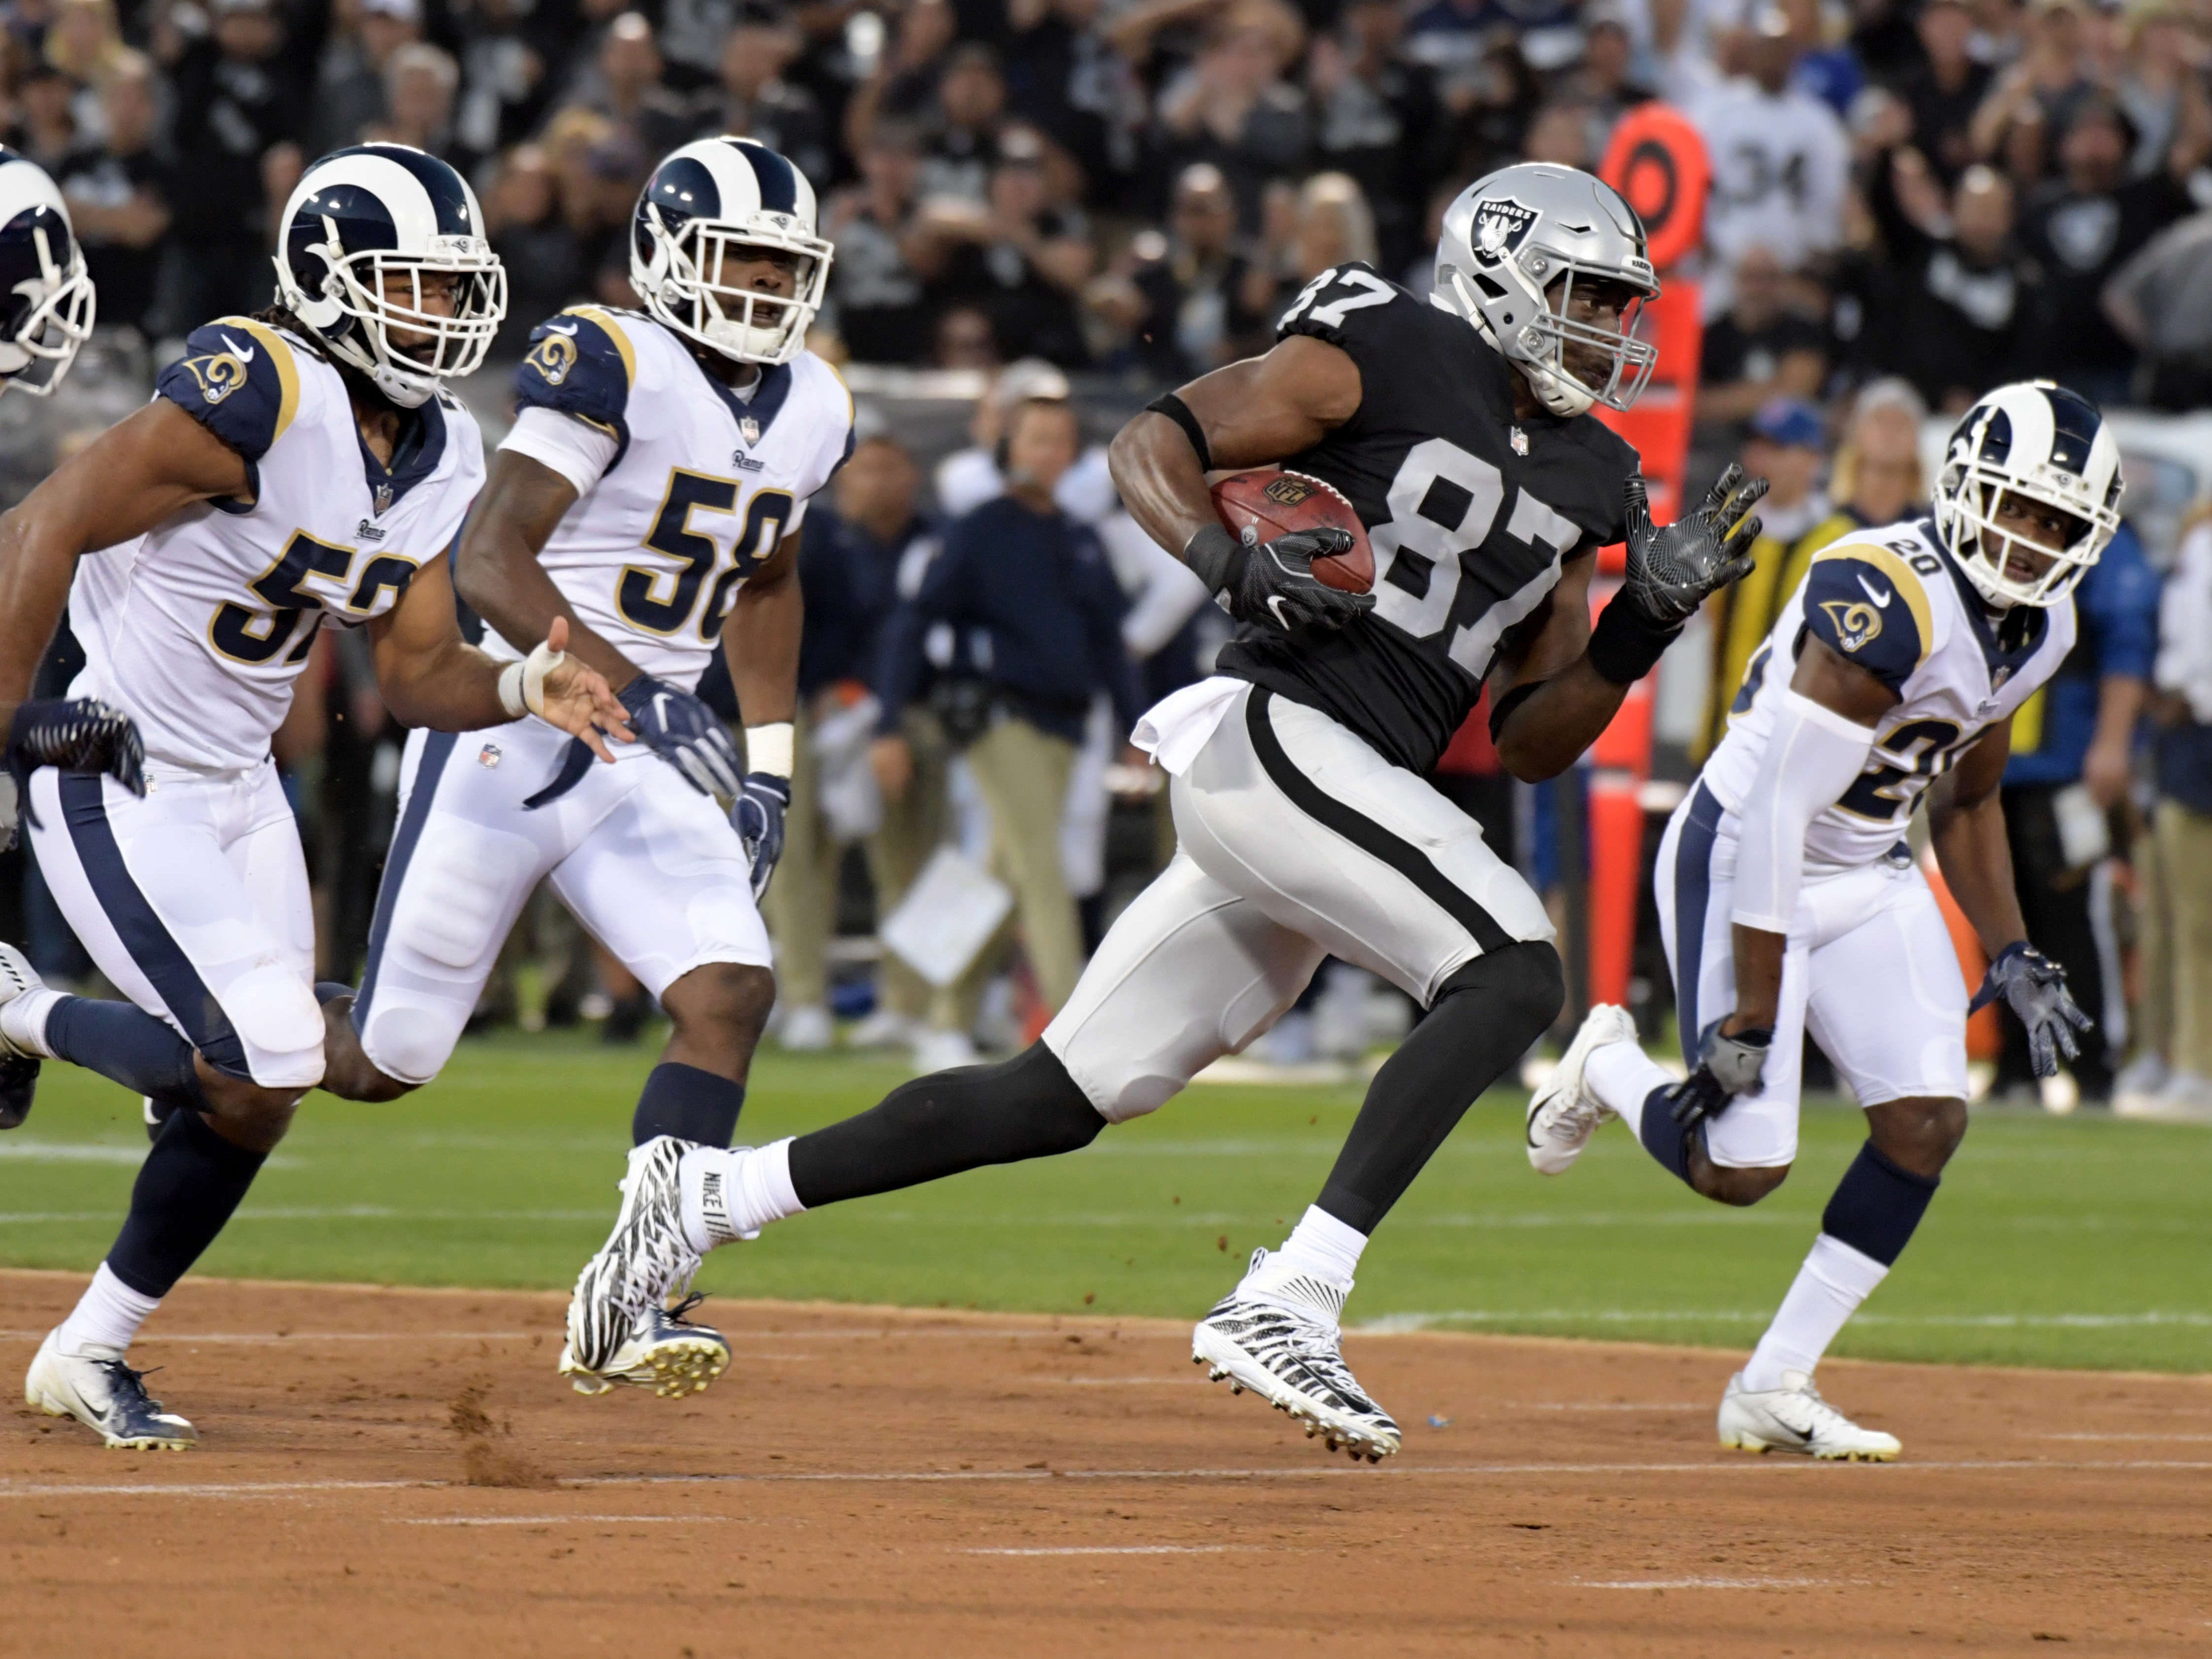 Raiders tight end Jared Cook carries the ball against the Los Angeles Rams.